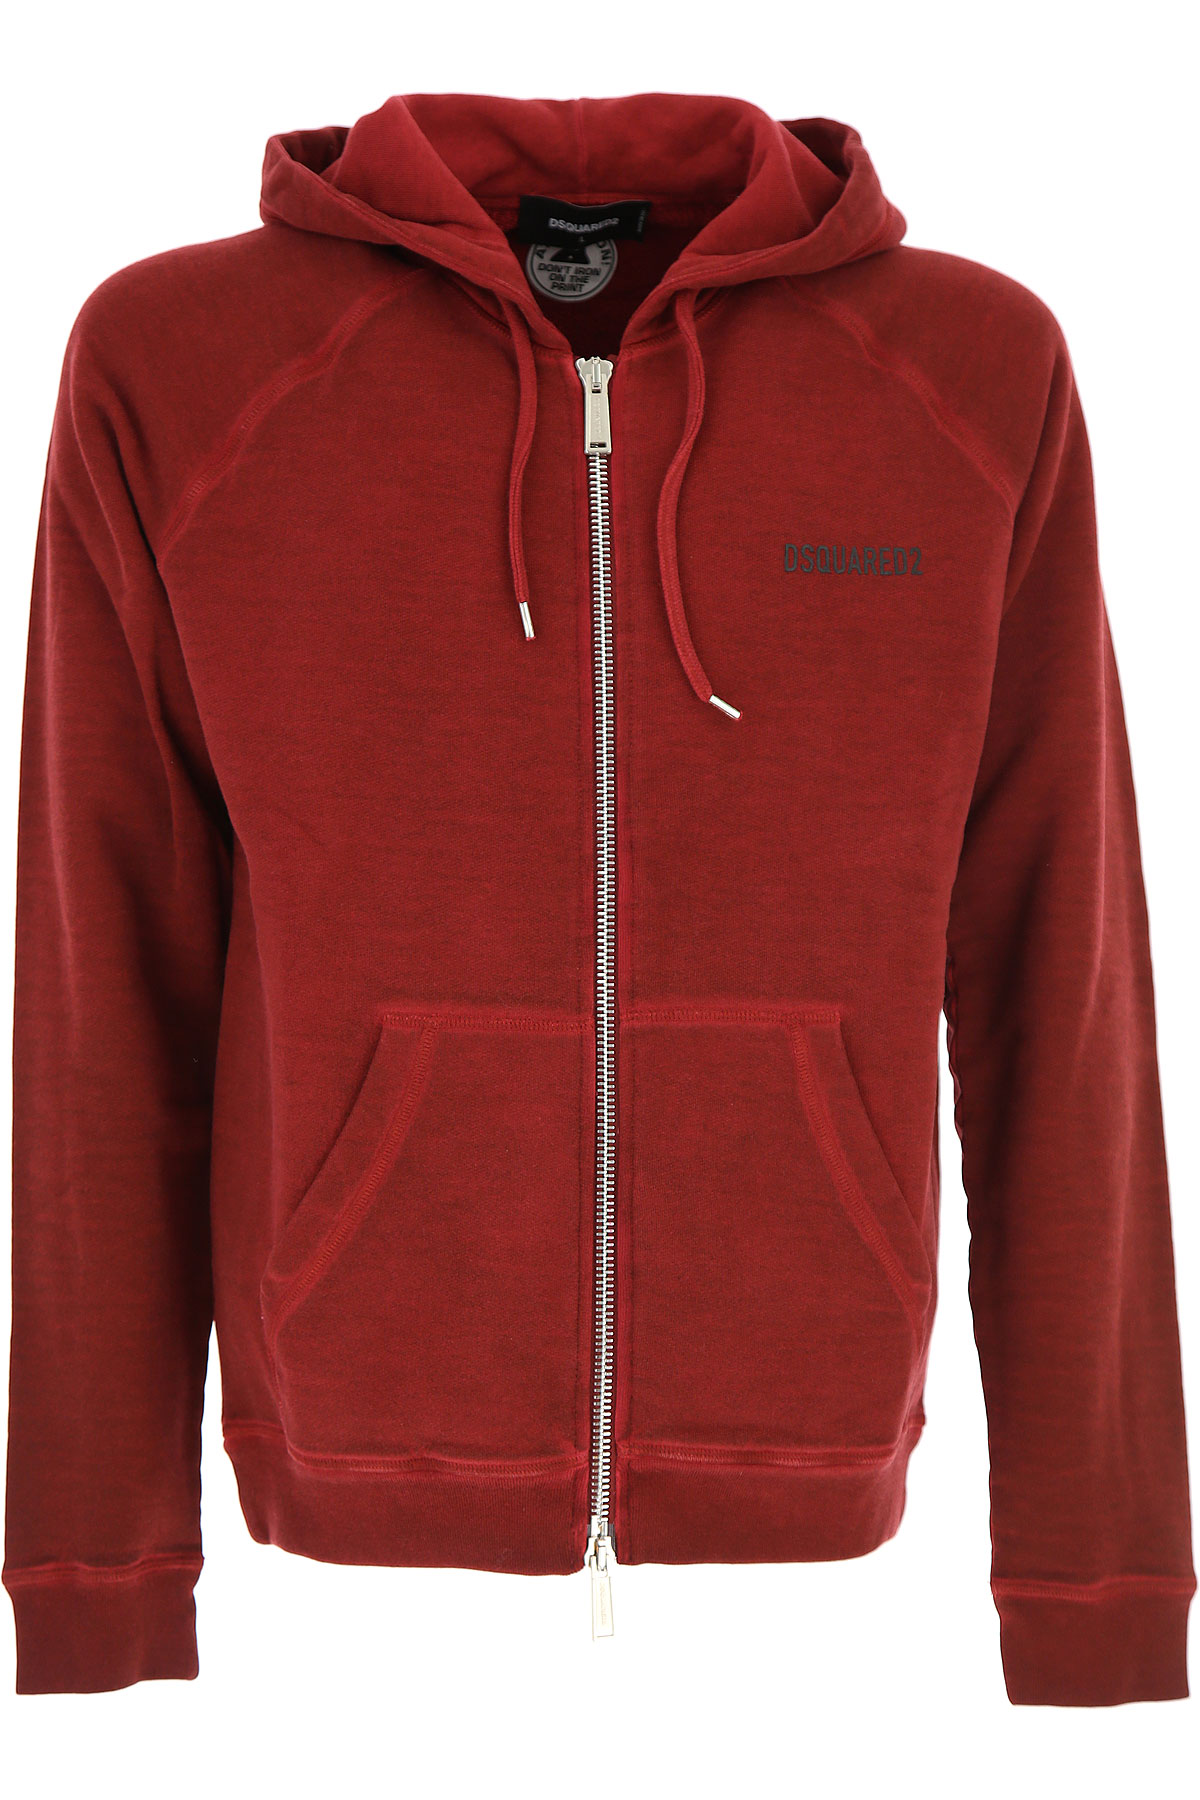 Dsquared2 Sweatshirt for Men On Sale, Red, Cotton, 2017, L M S USA-431309